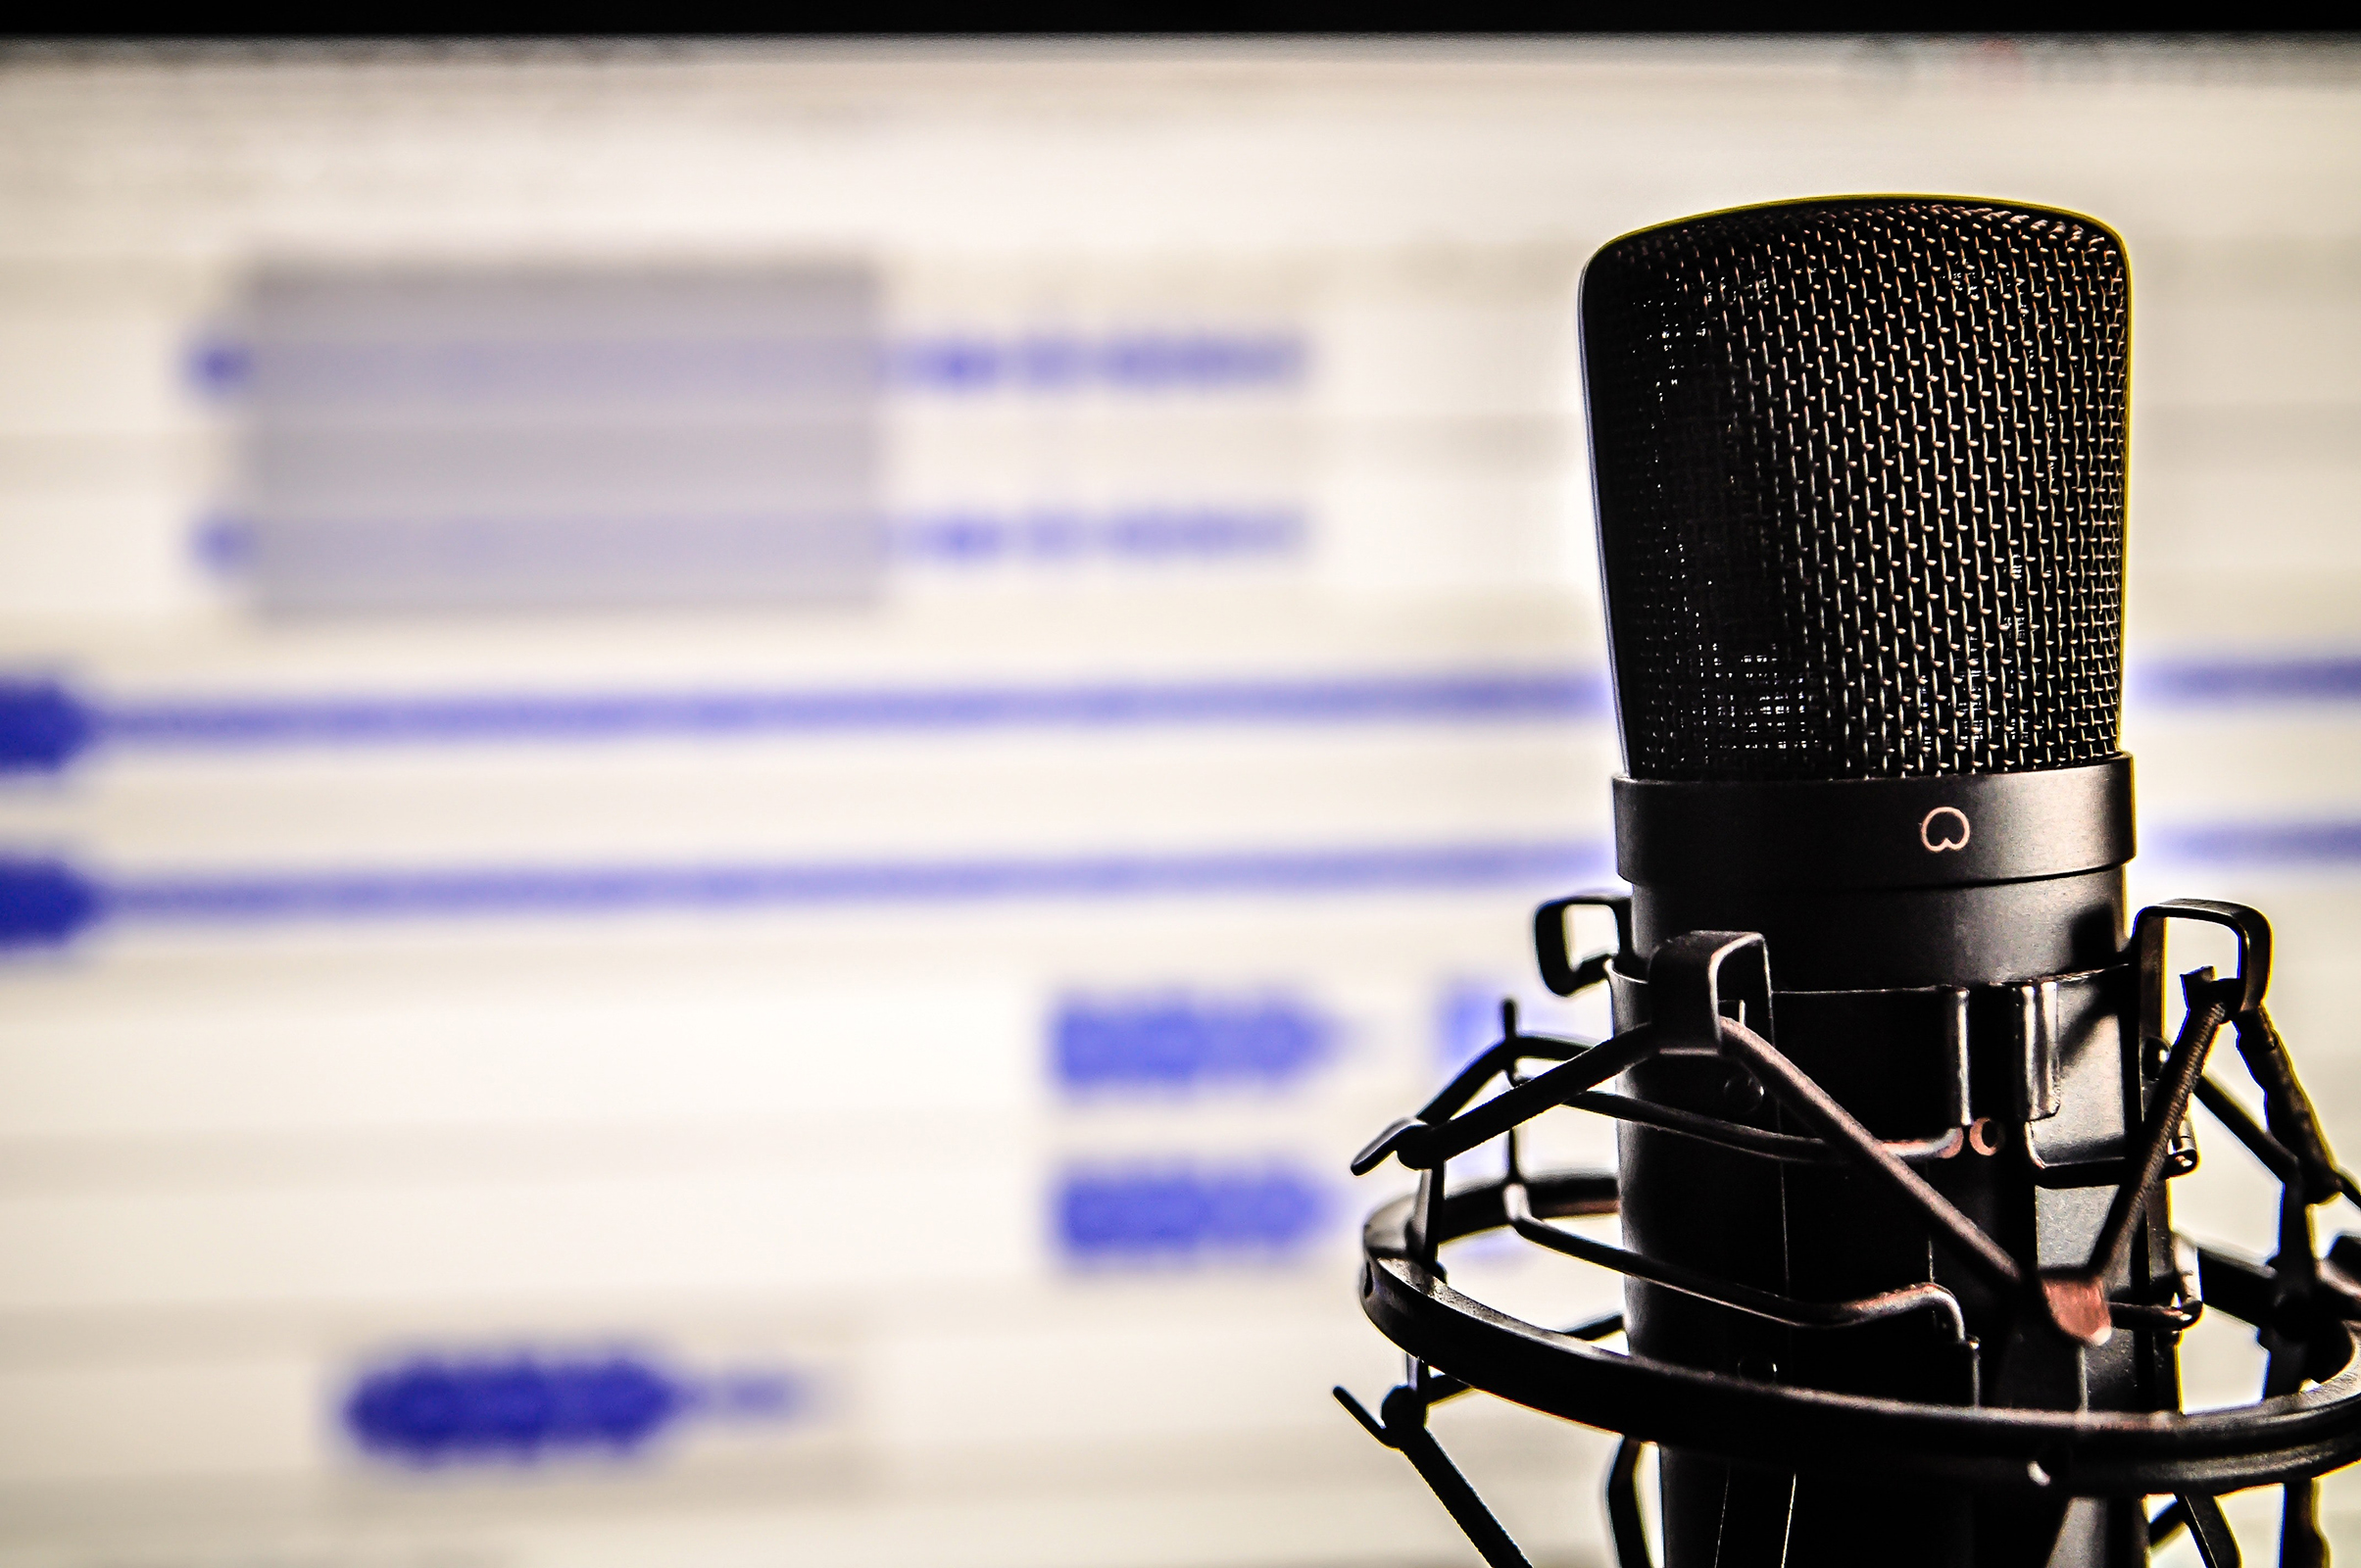 Microphone in front of audio editing software on a screen